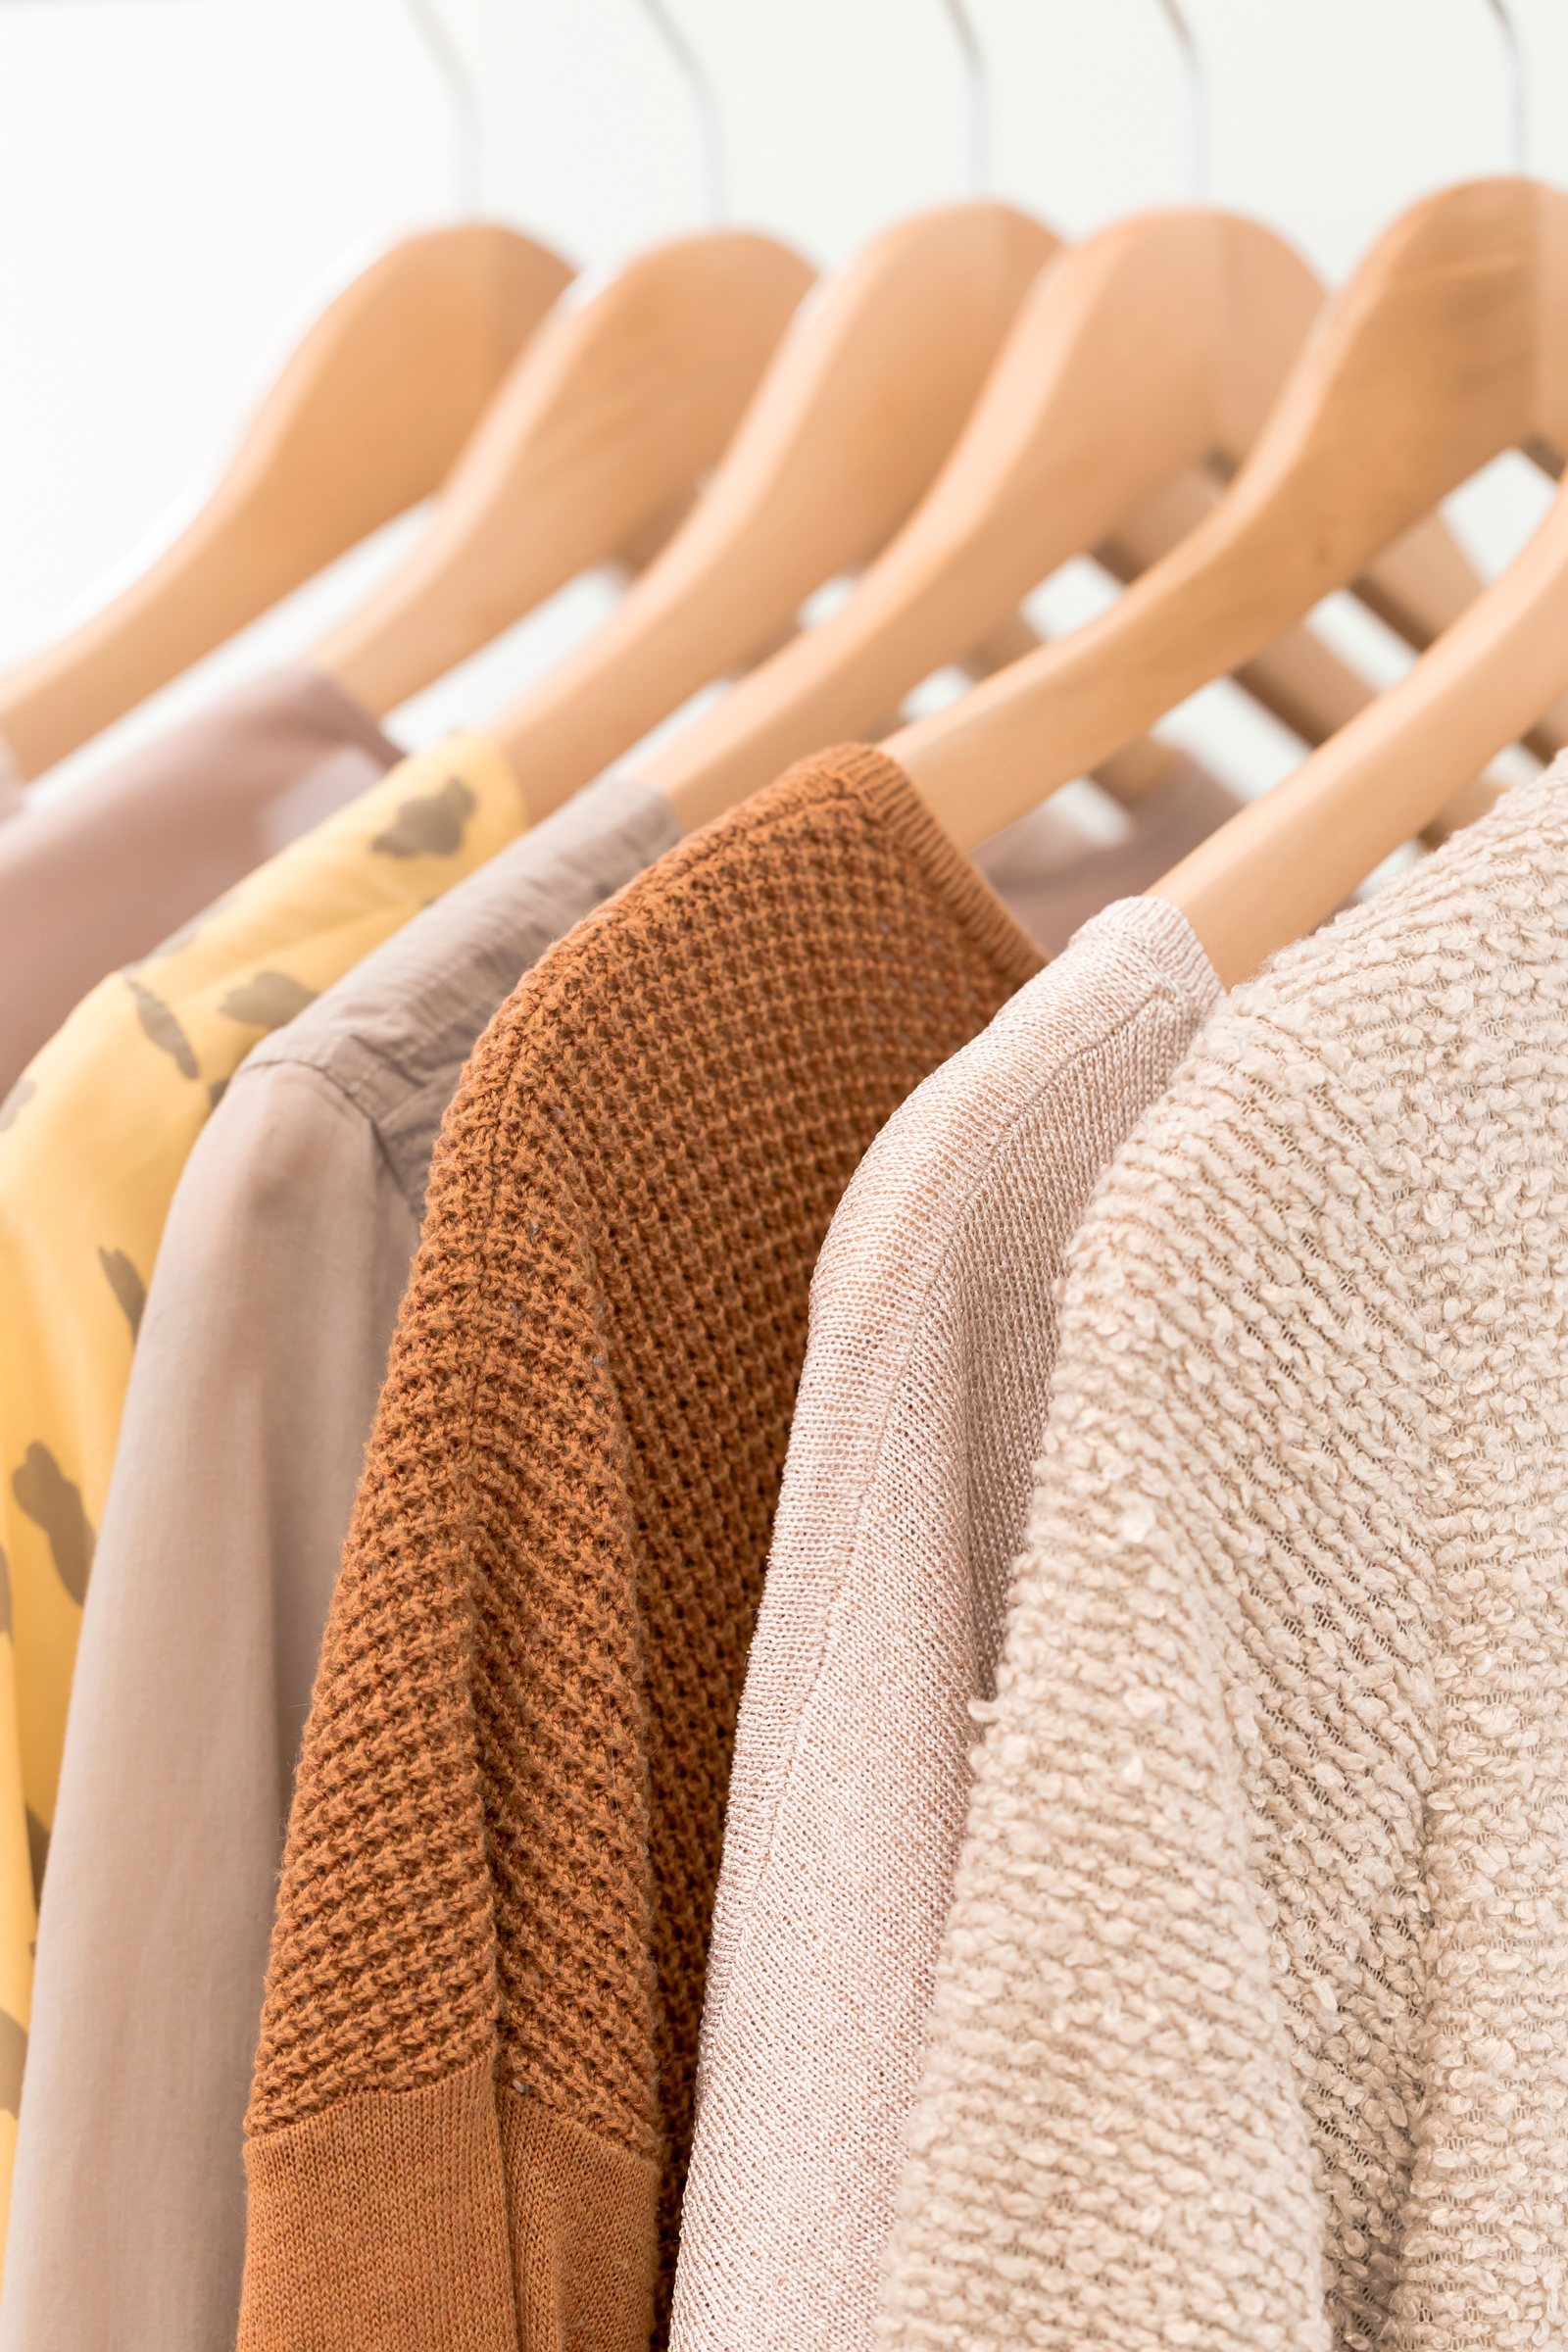 haute-stock-photography-muted-citrus-collection-final-3.jpg